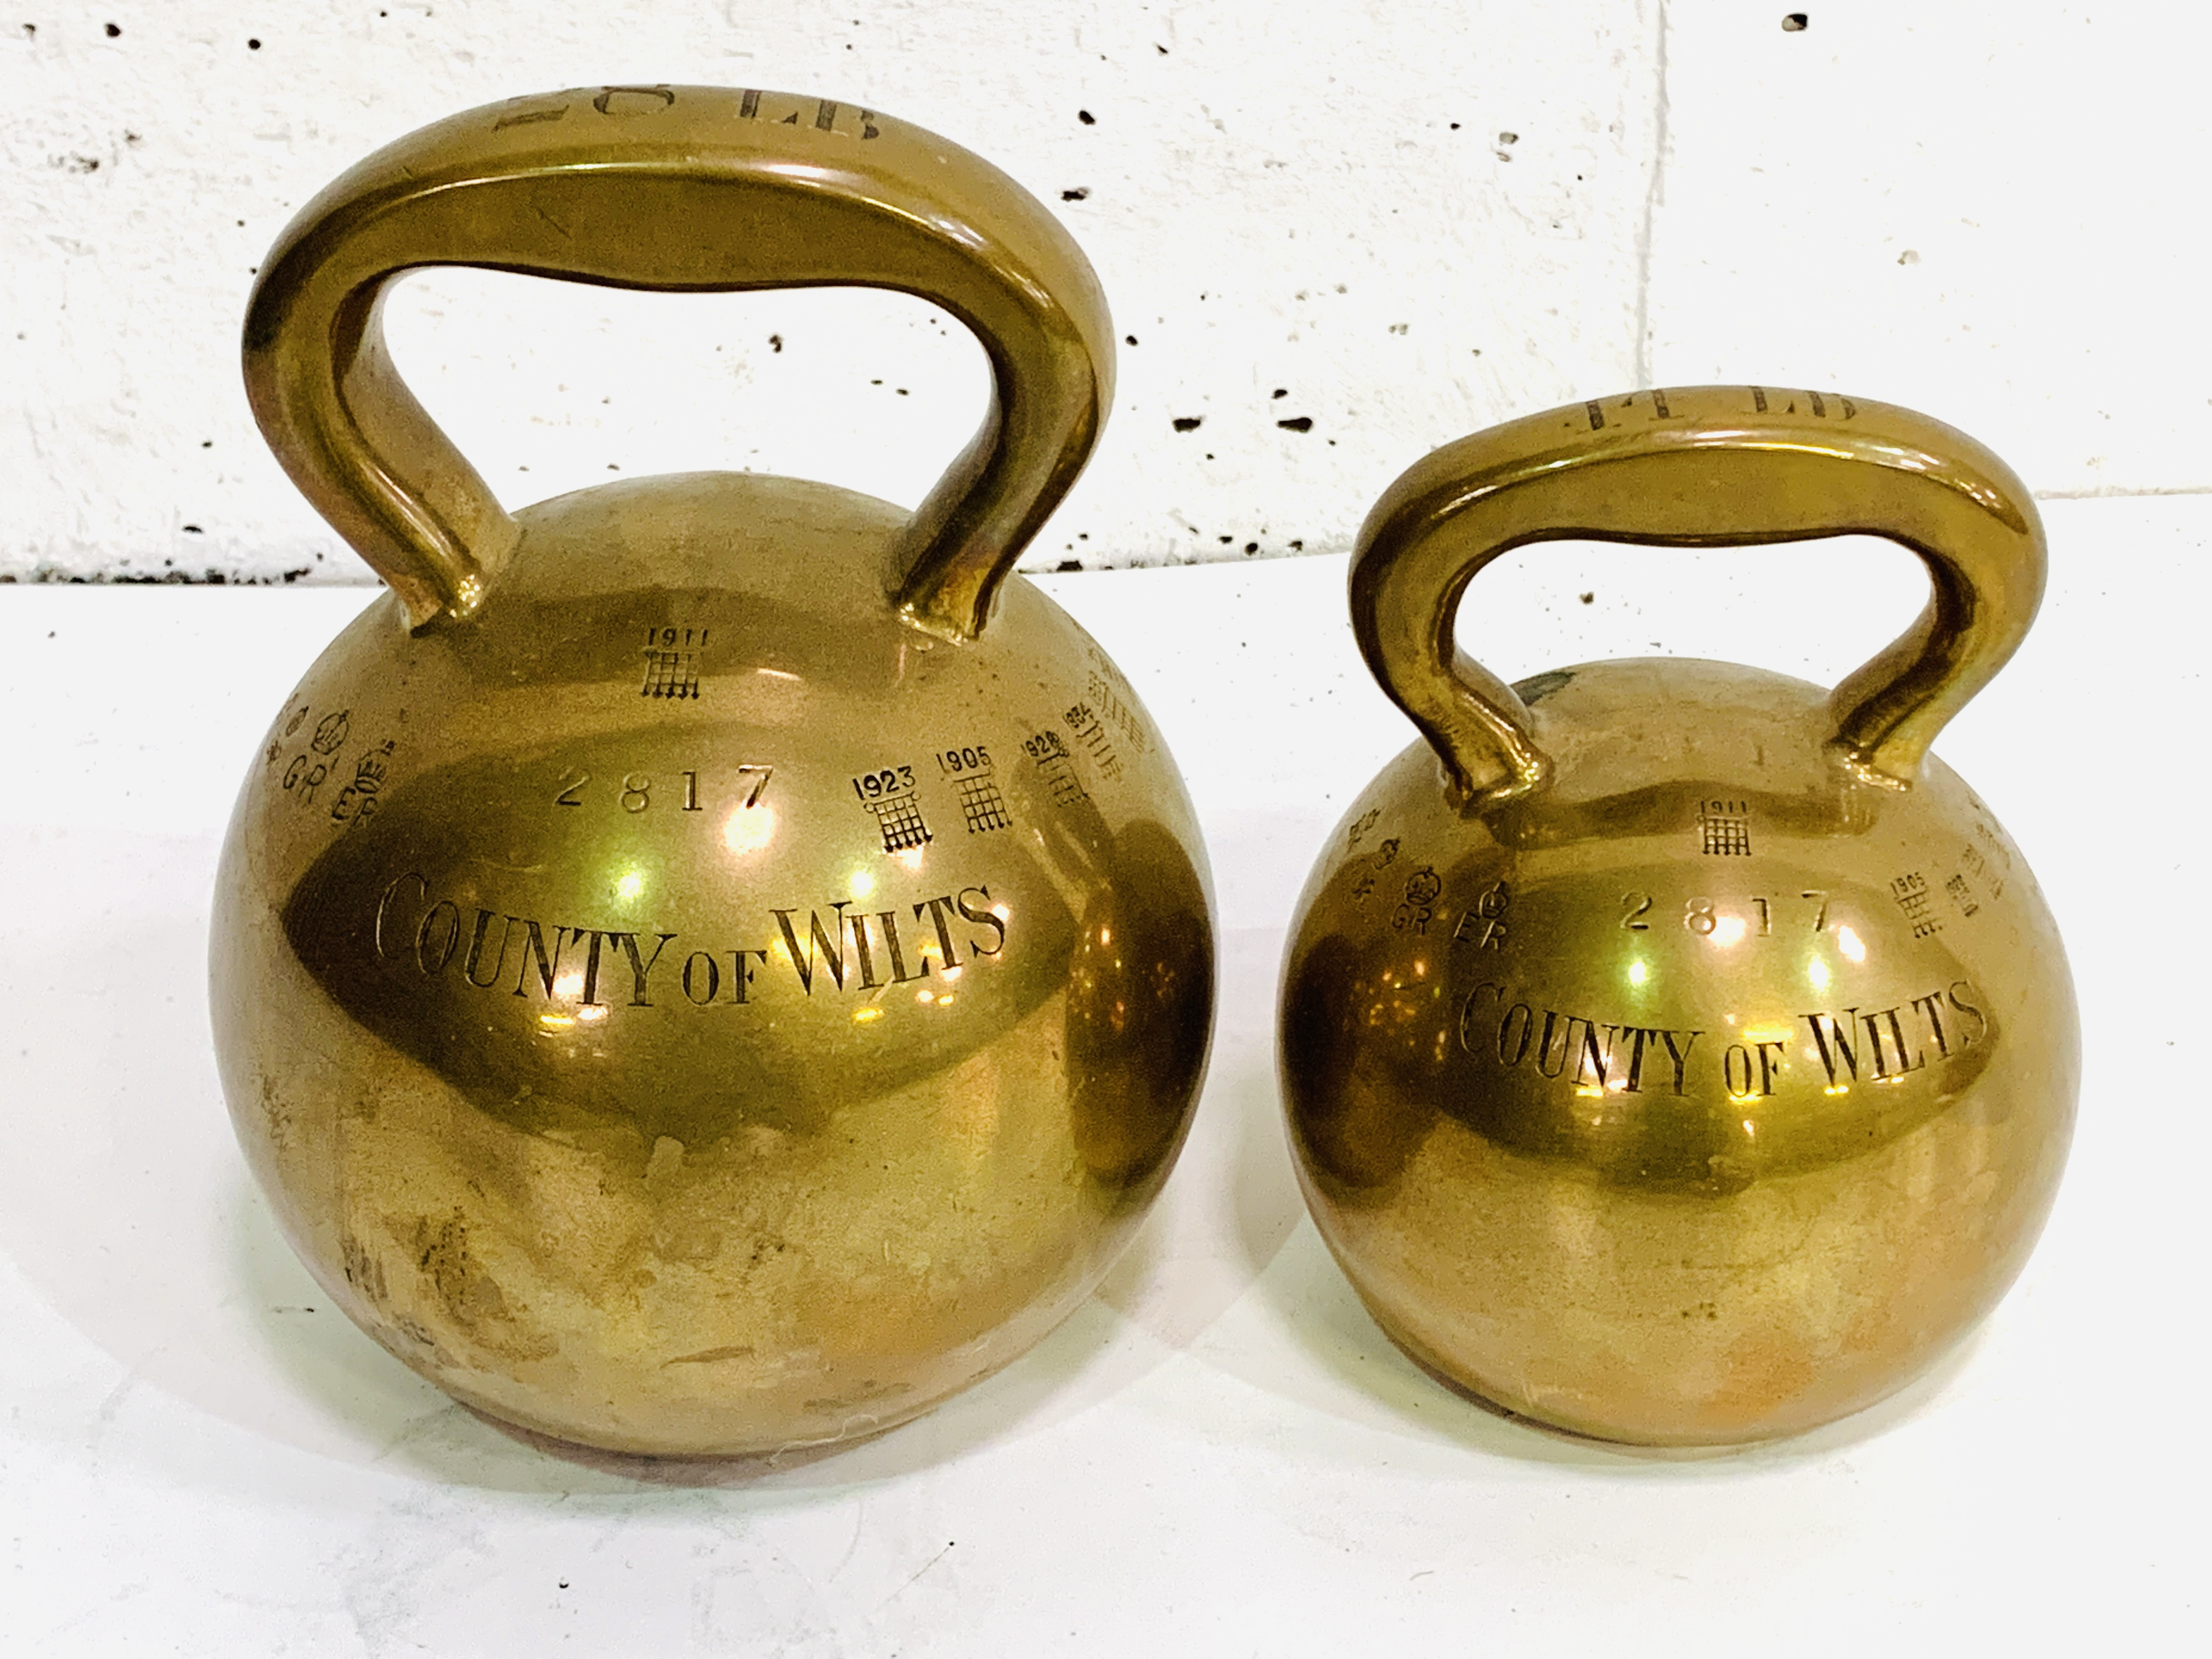 Two brass County of Wilts bell weights